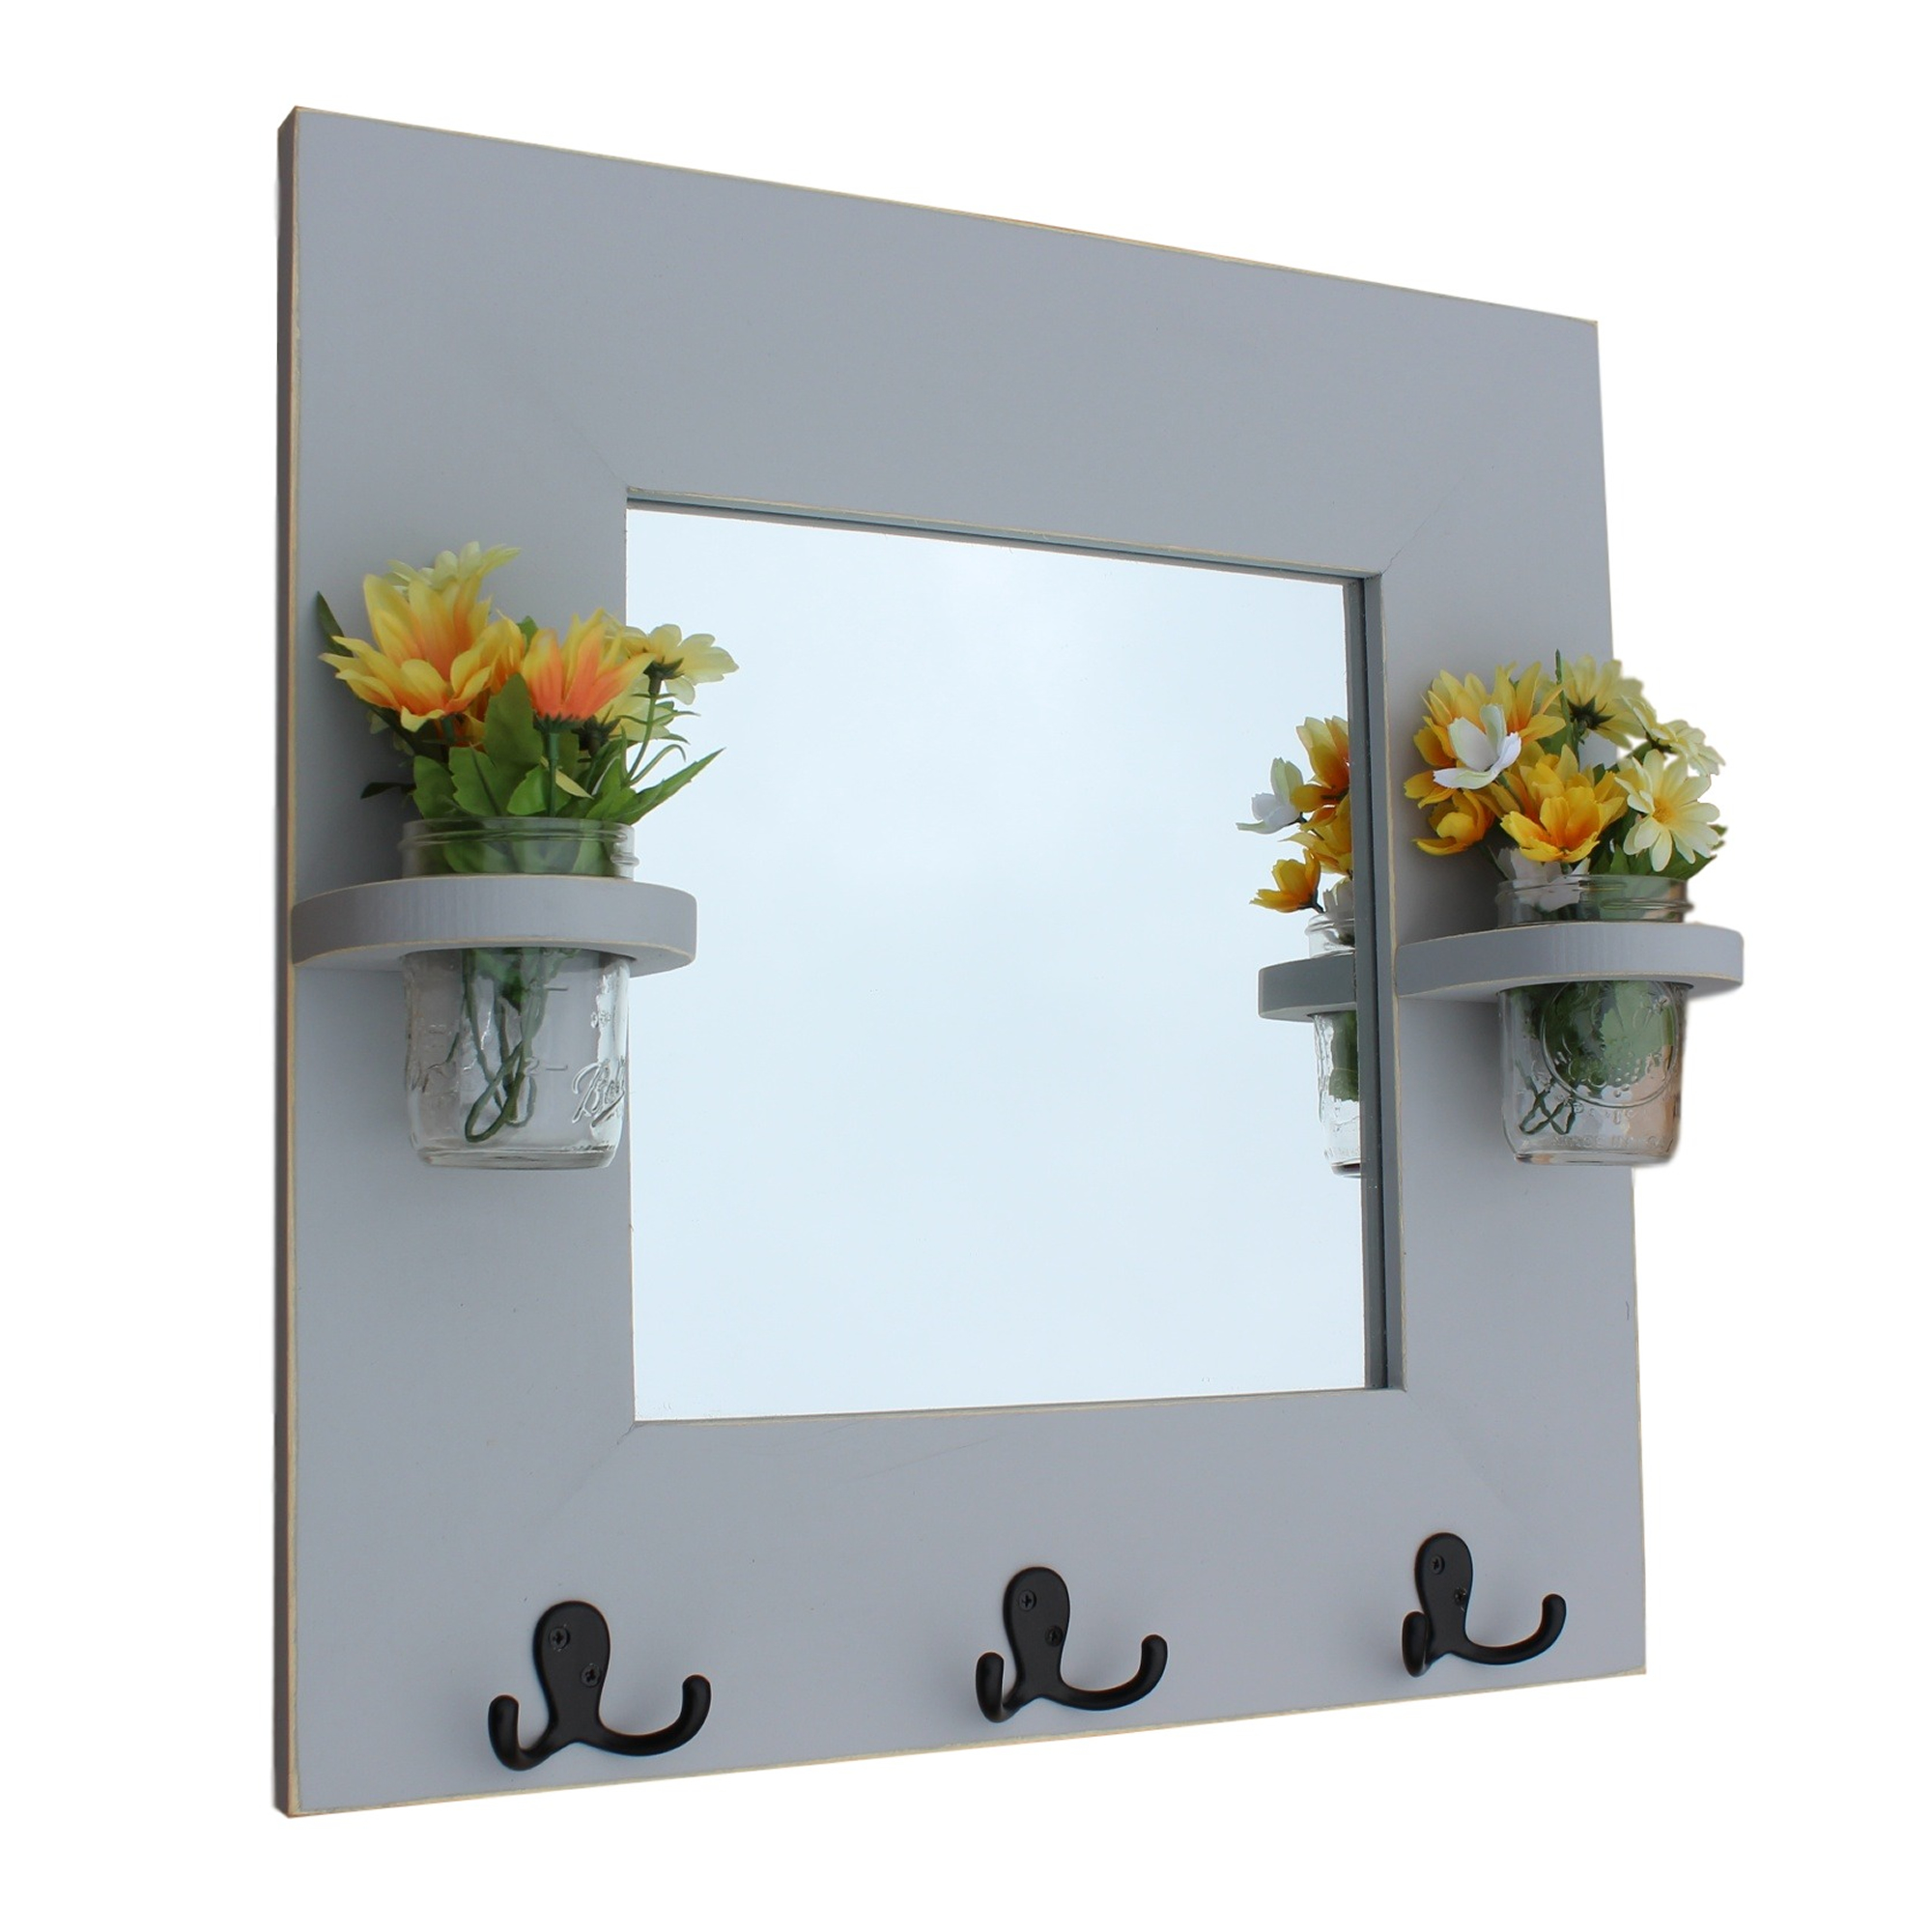 Mirror with Coat Hooks and Mason Jars